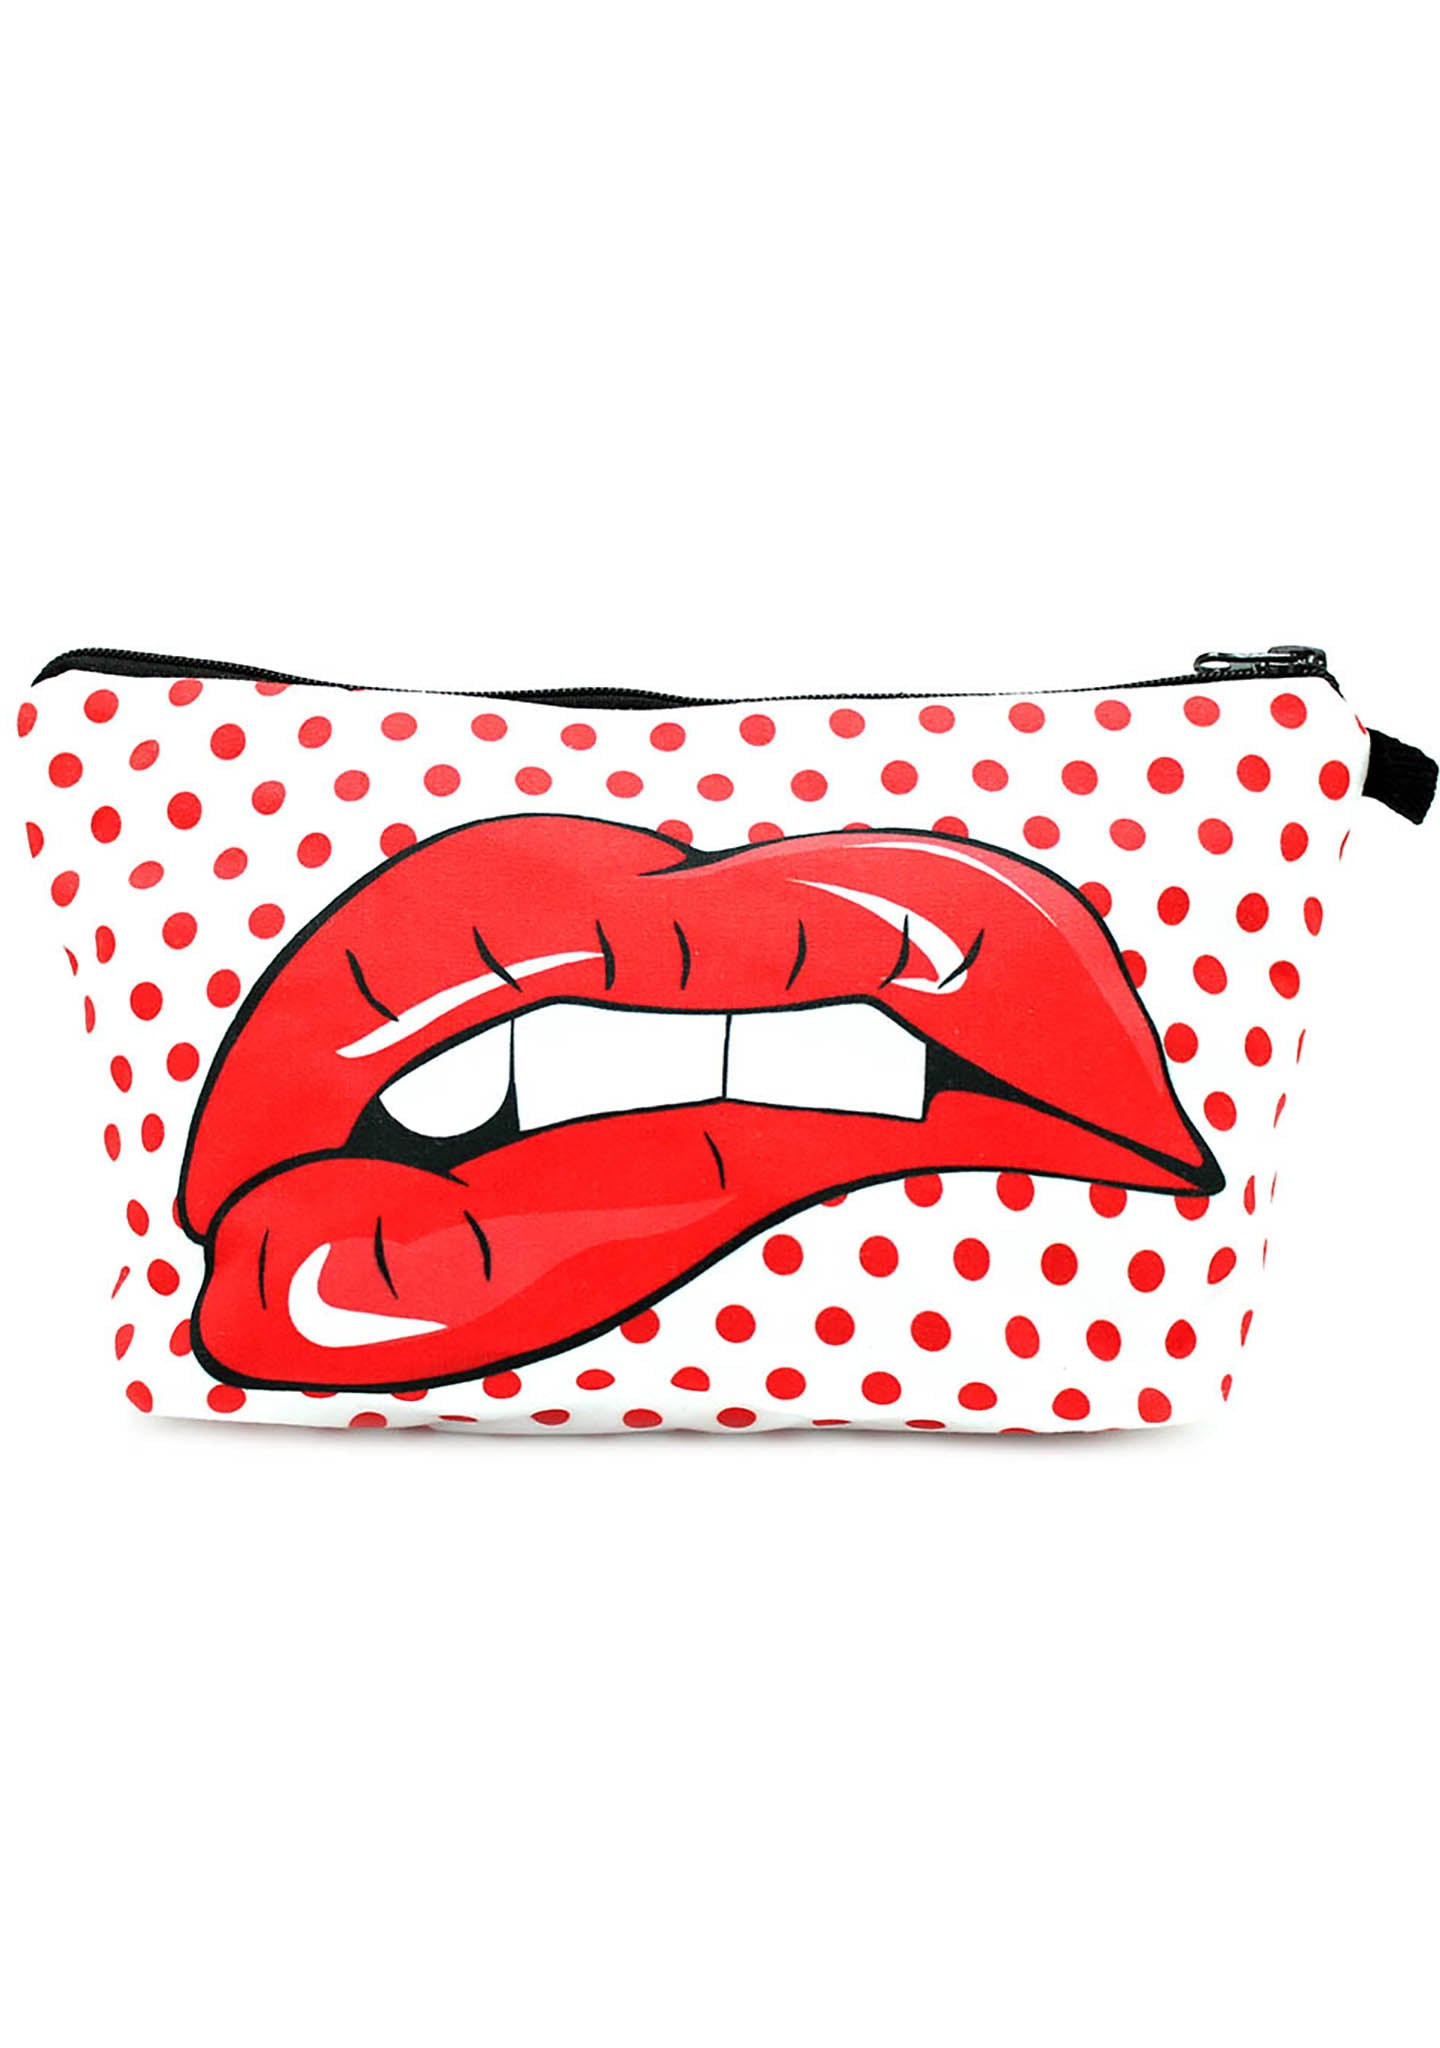 7 LUXE Pop Lips Cosmetic Bag